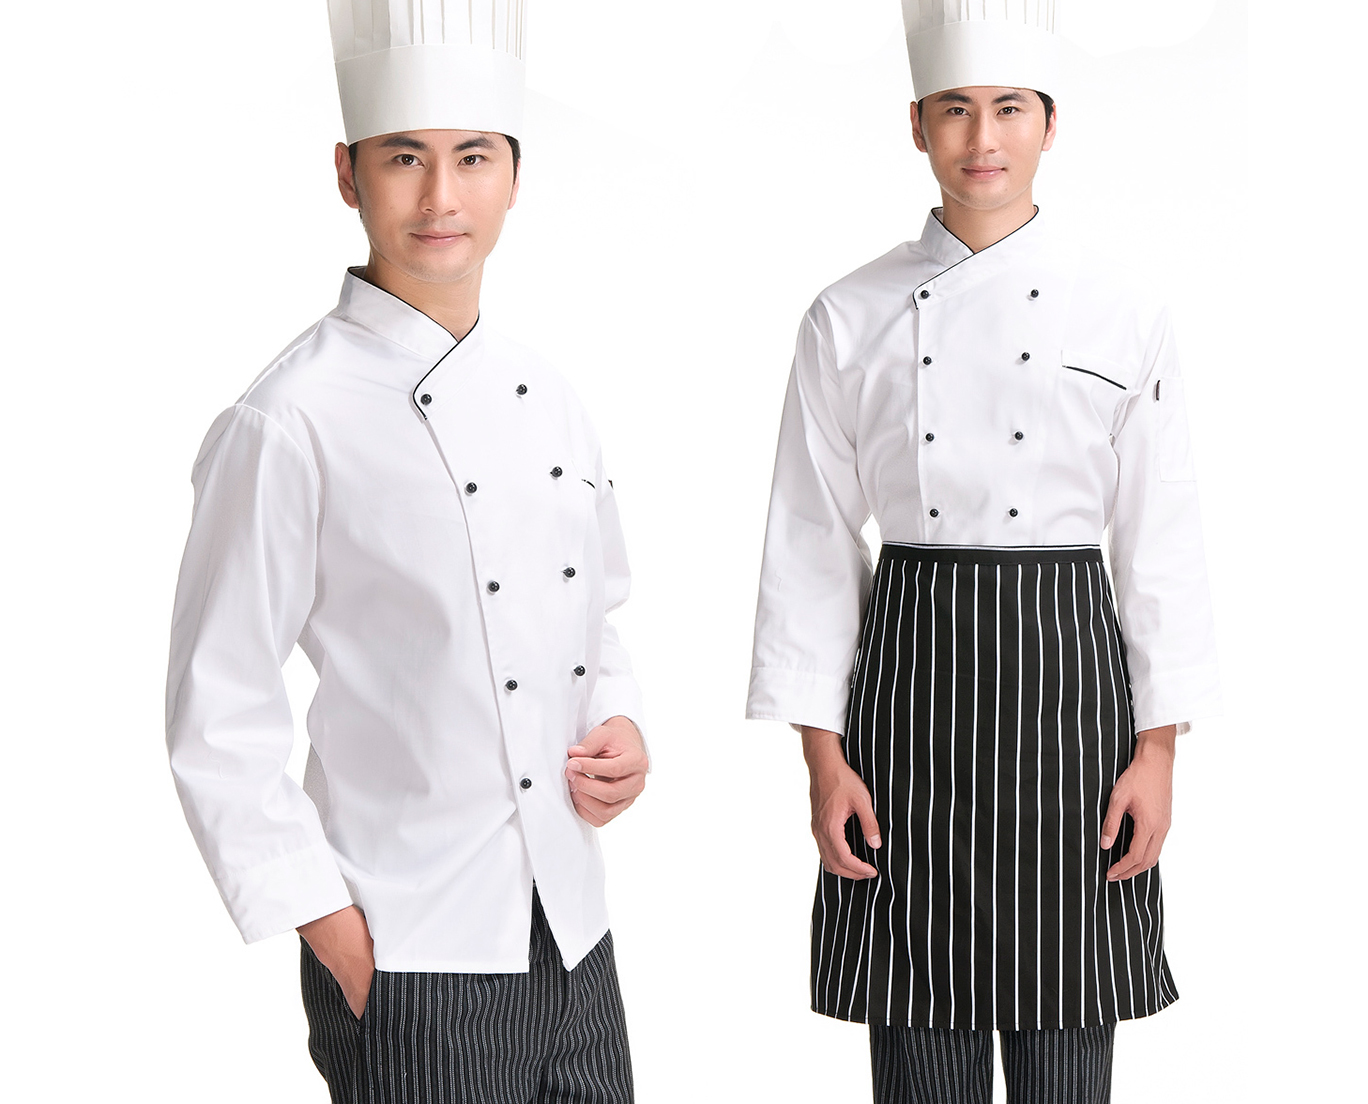 uniformes de cocina uniformes safety